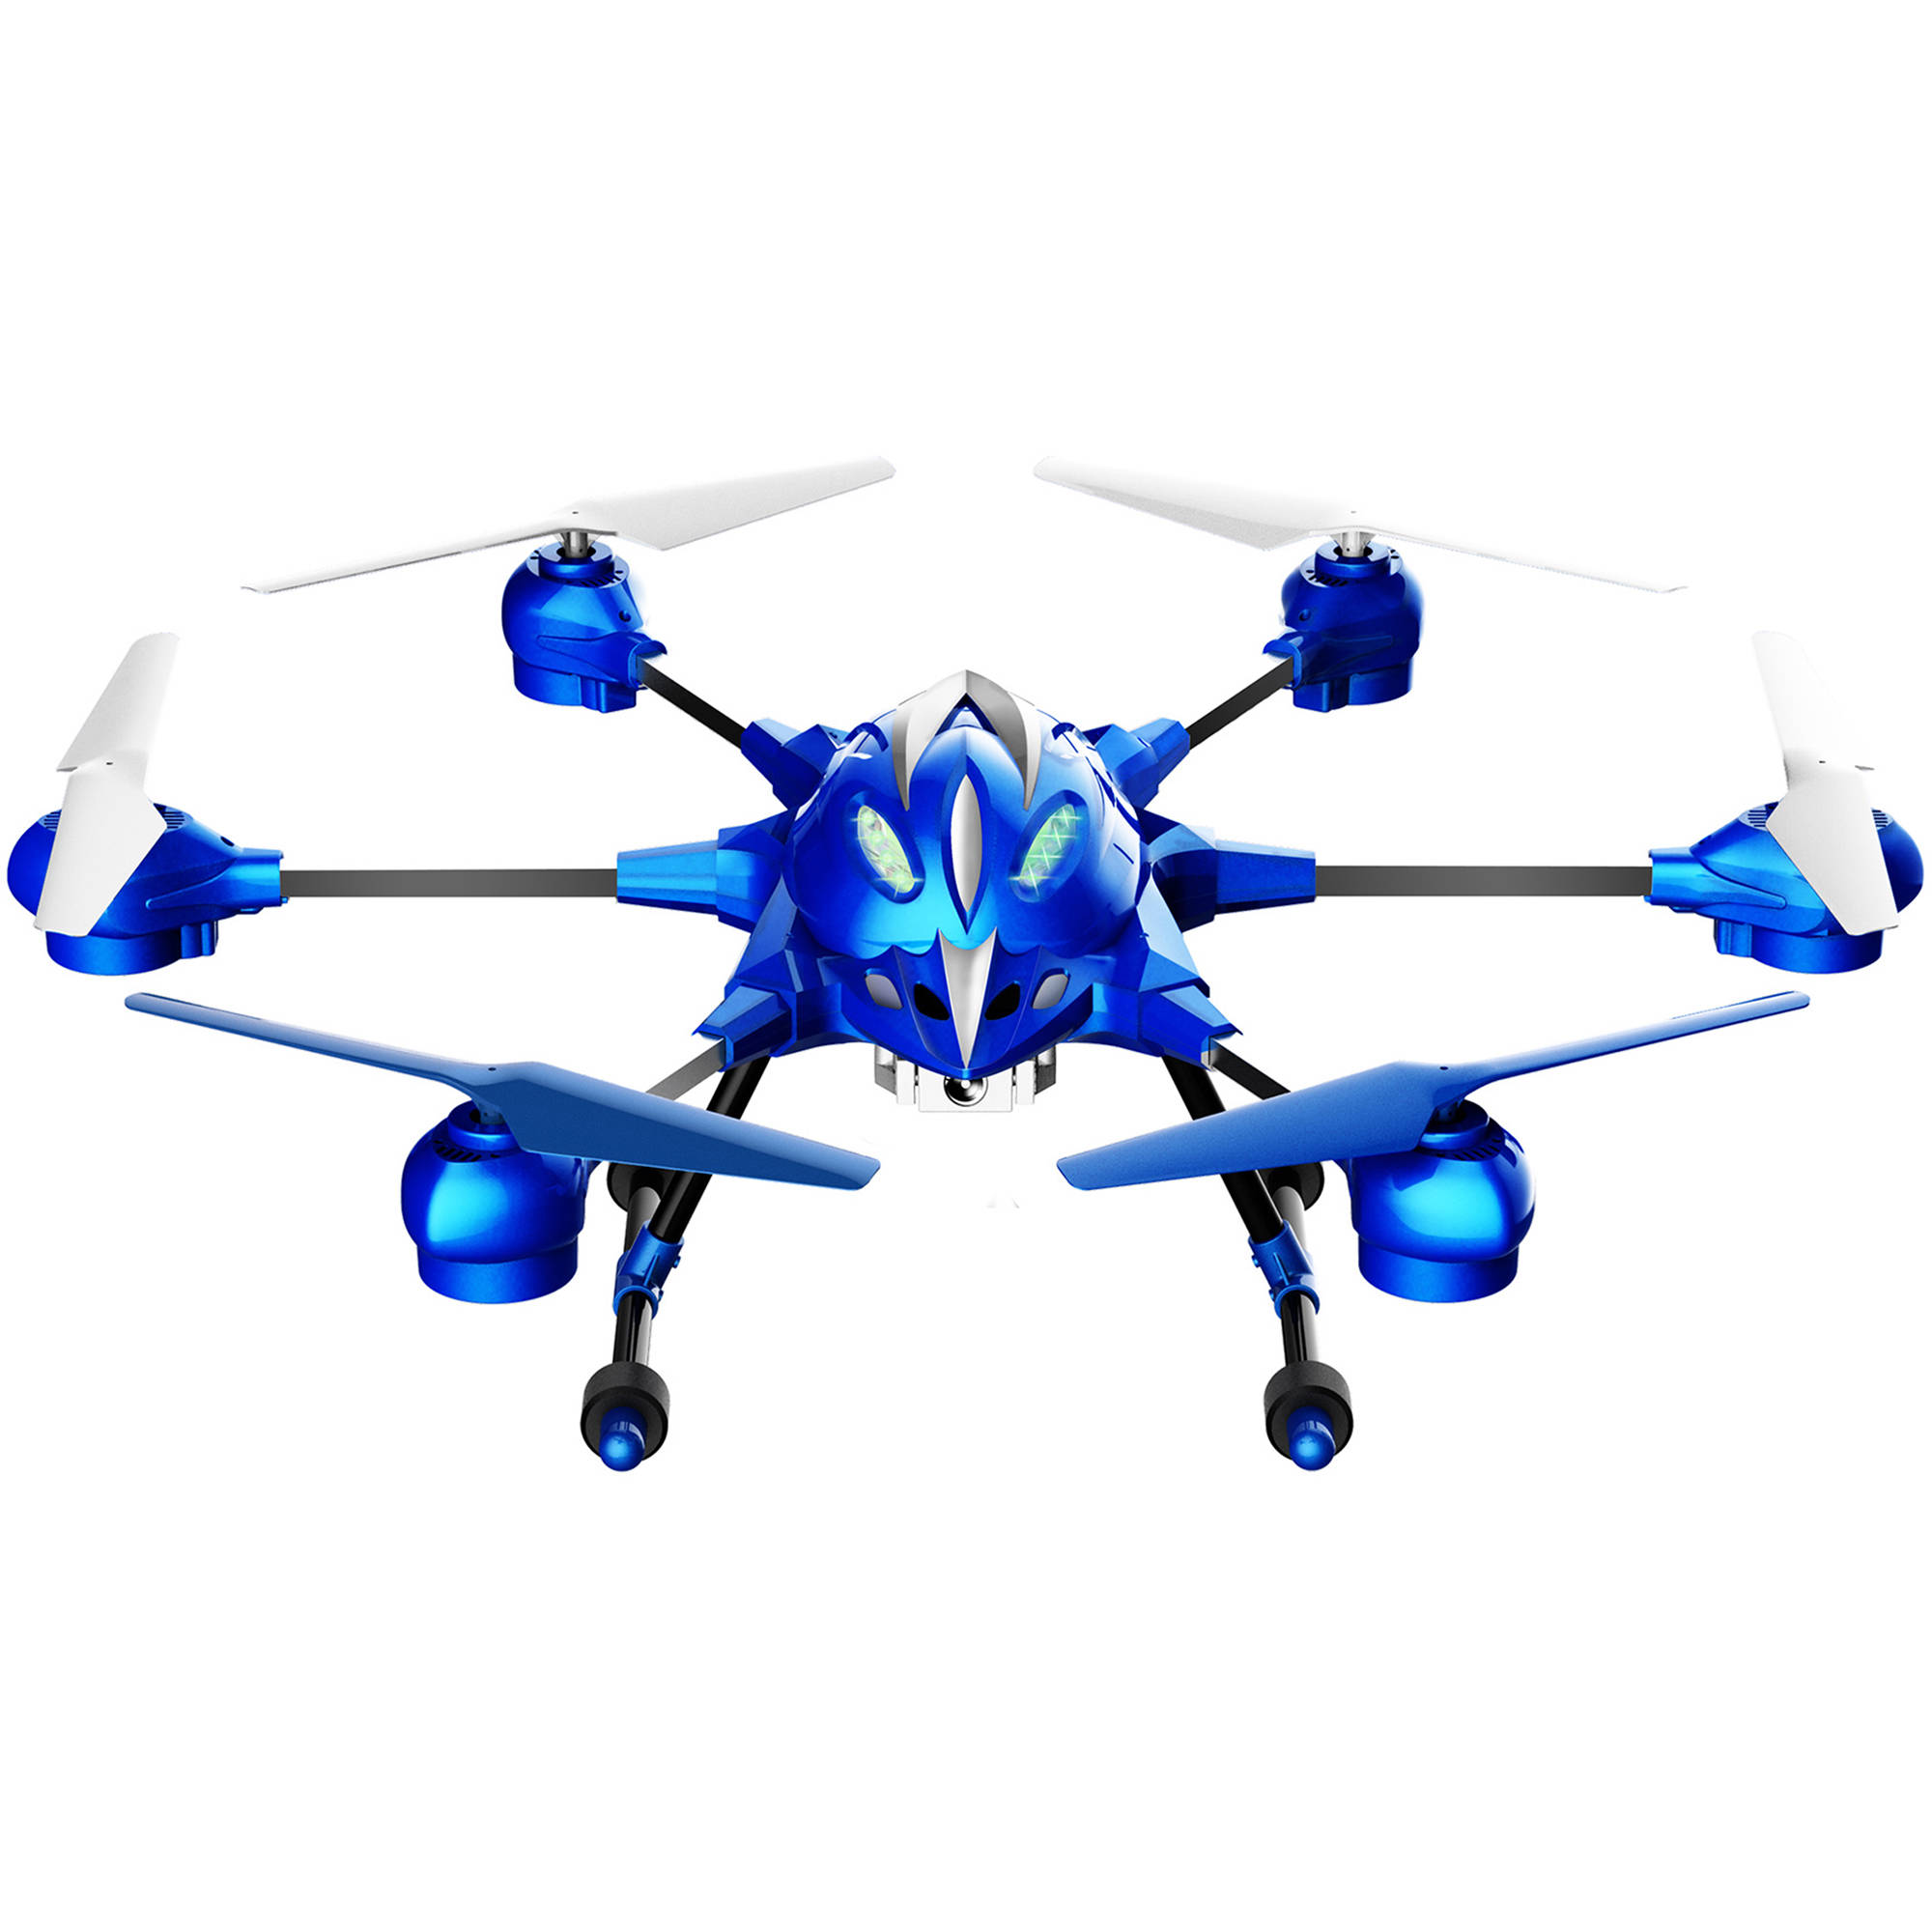 Riviera RC Pathfinder Hexacopter Drone (Small, Blue)